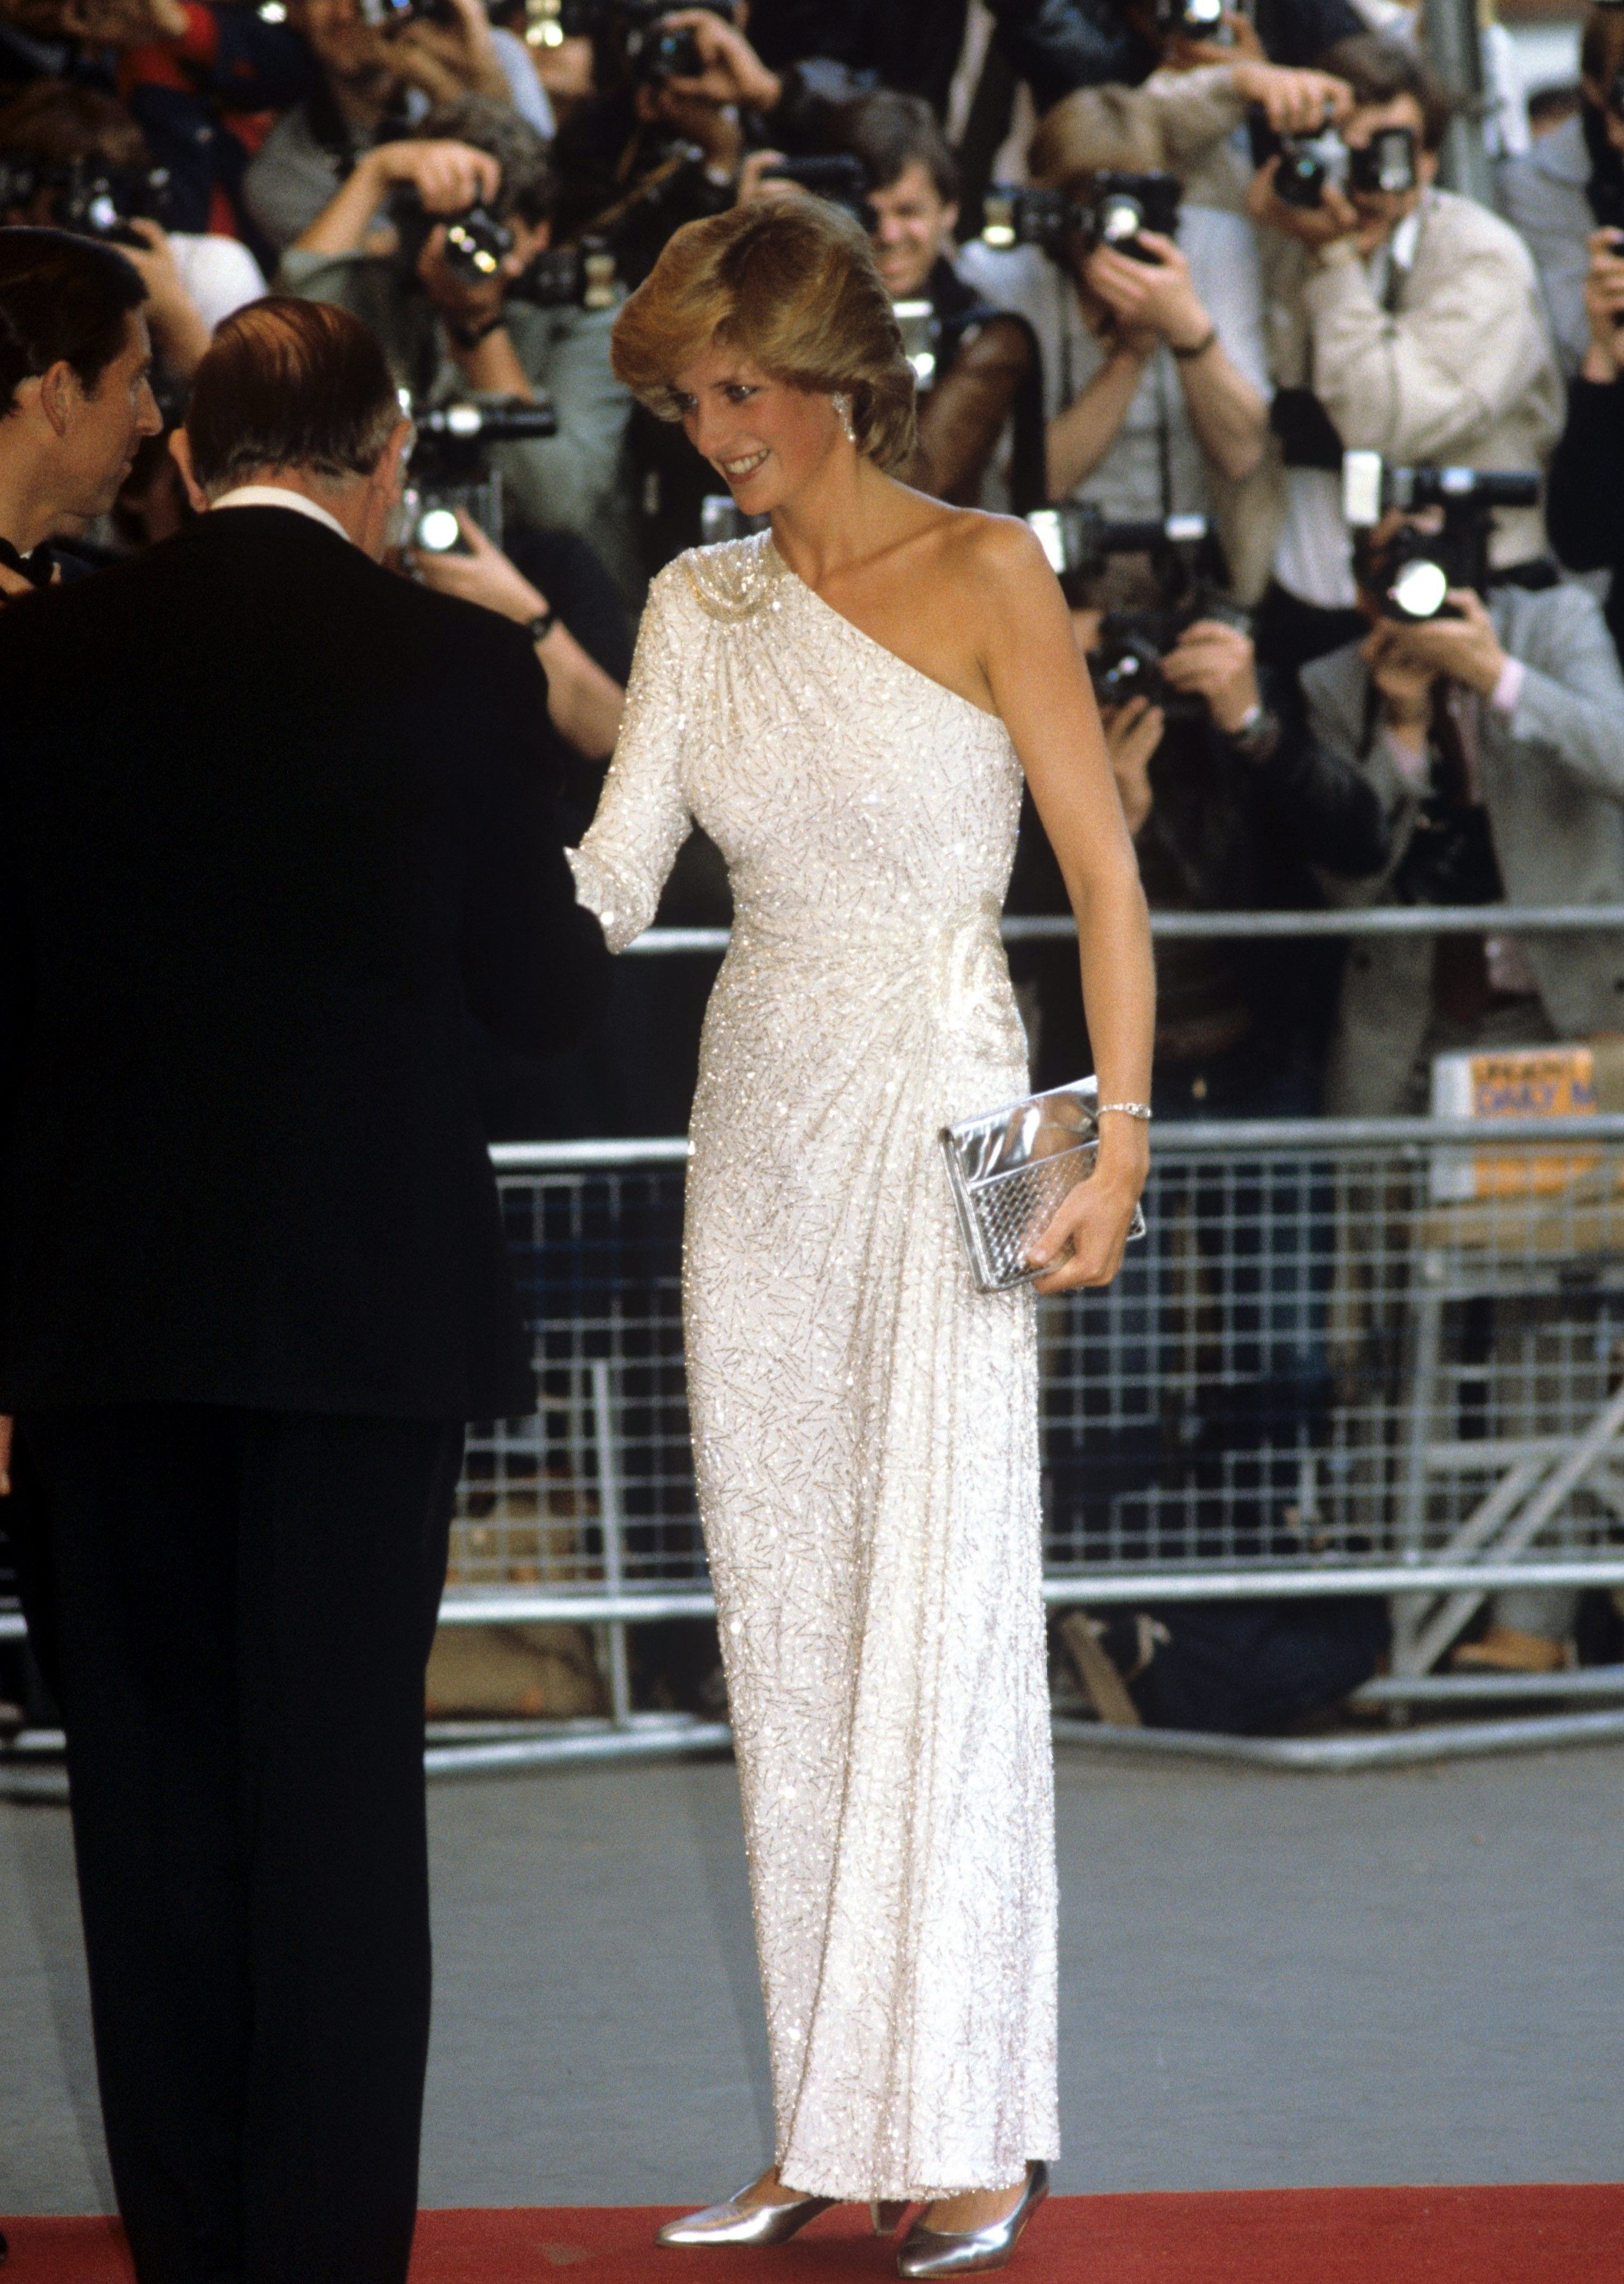 The World's Most Stylish Royals Ranked - Fame10